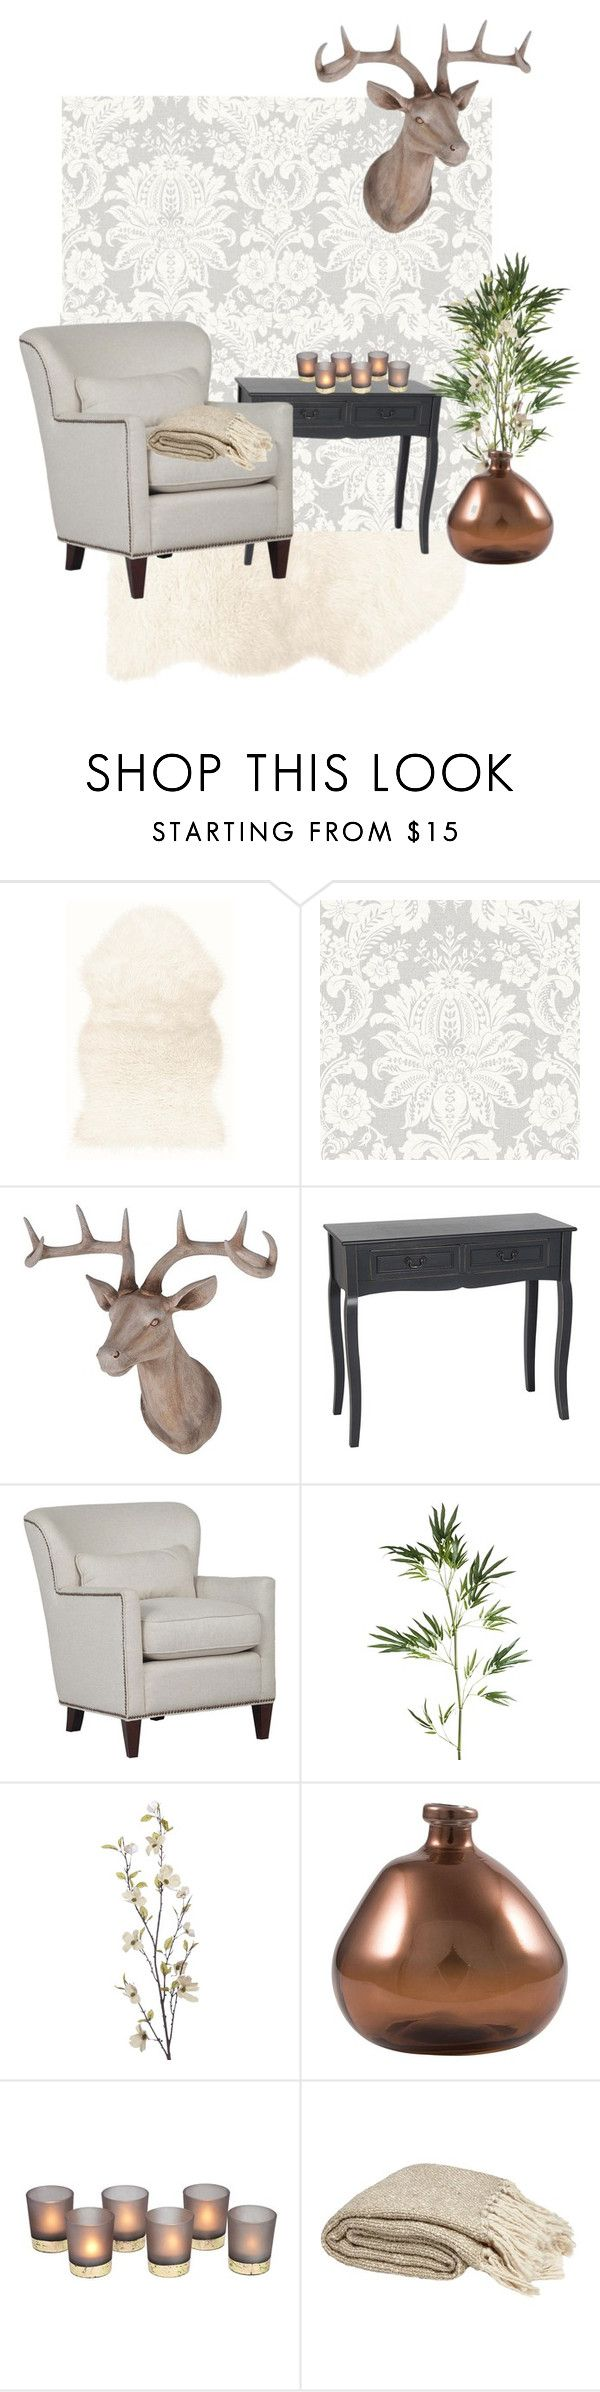 """""""Venetian Damask Living Room #1"""" by graham-brown ❤ liked on Polyvore featuring interior, interiors, interior design, home, home decor, interior decorating, Pier 1 Imports and living room"""